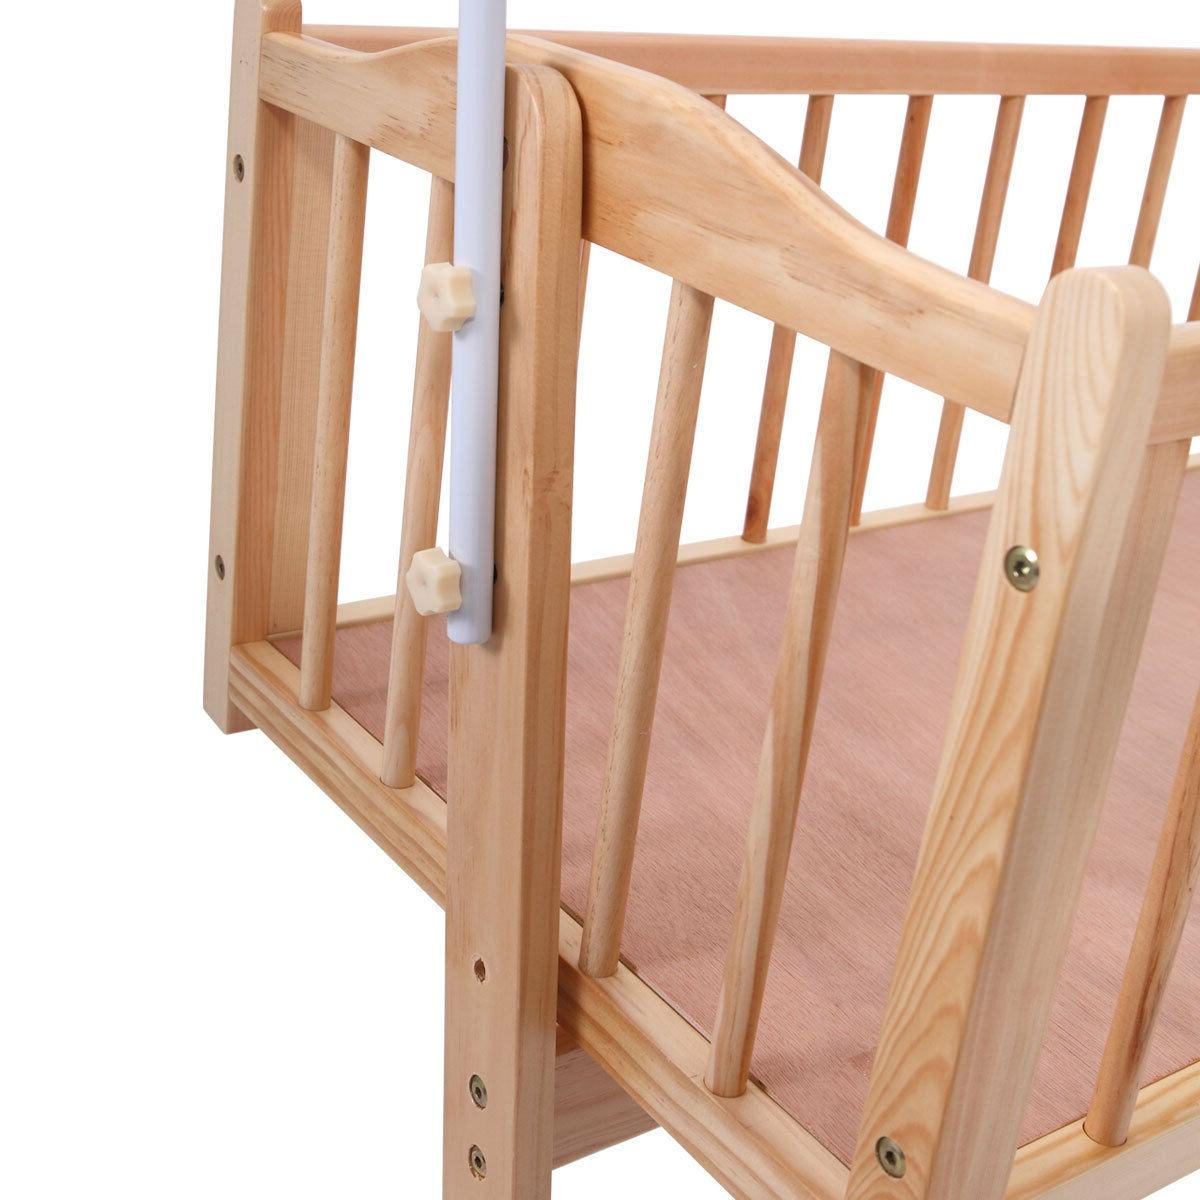 Baby Cradle Dimensions Wood Baby Cradle Rocking Bassinet Bed Sleeper Born